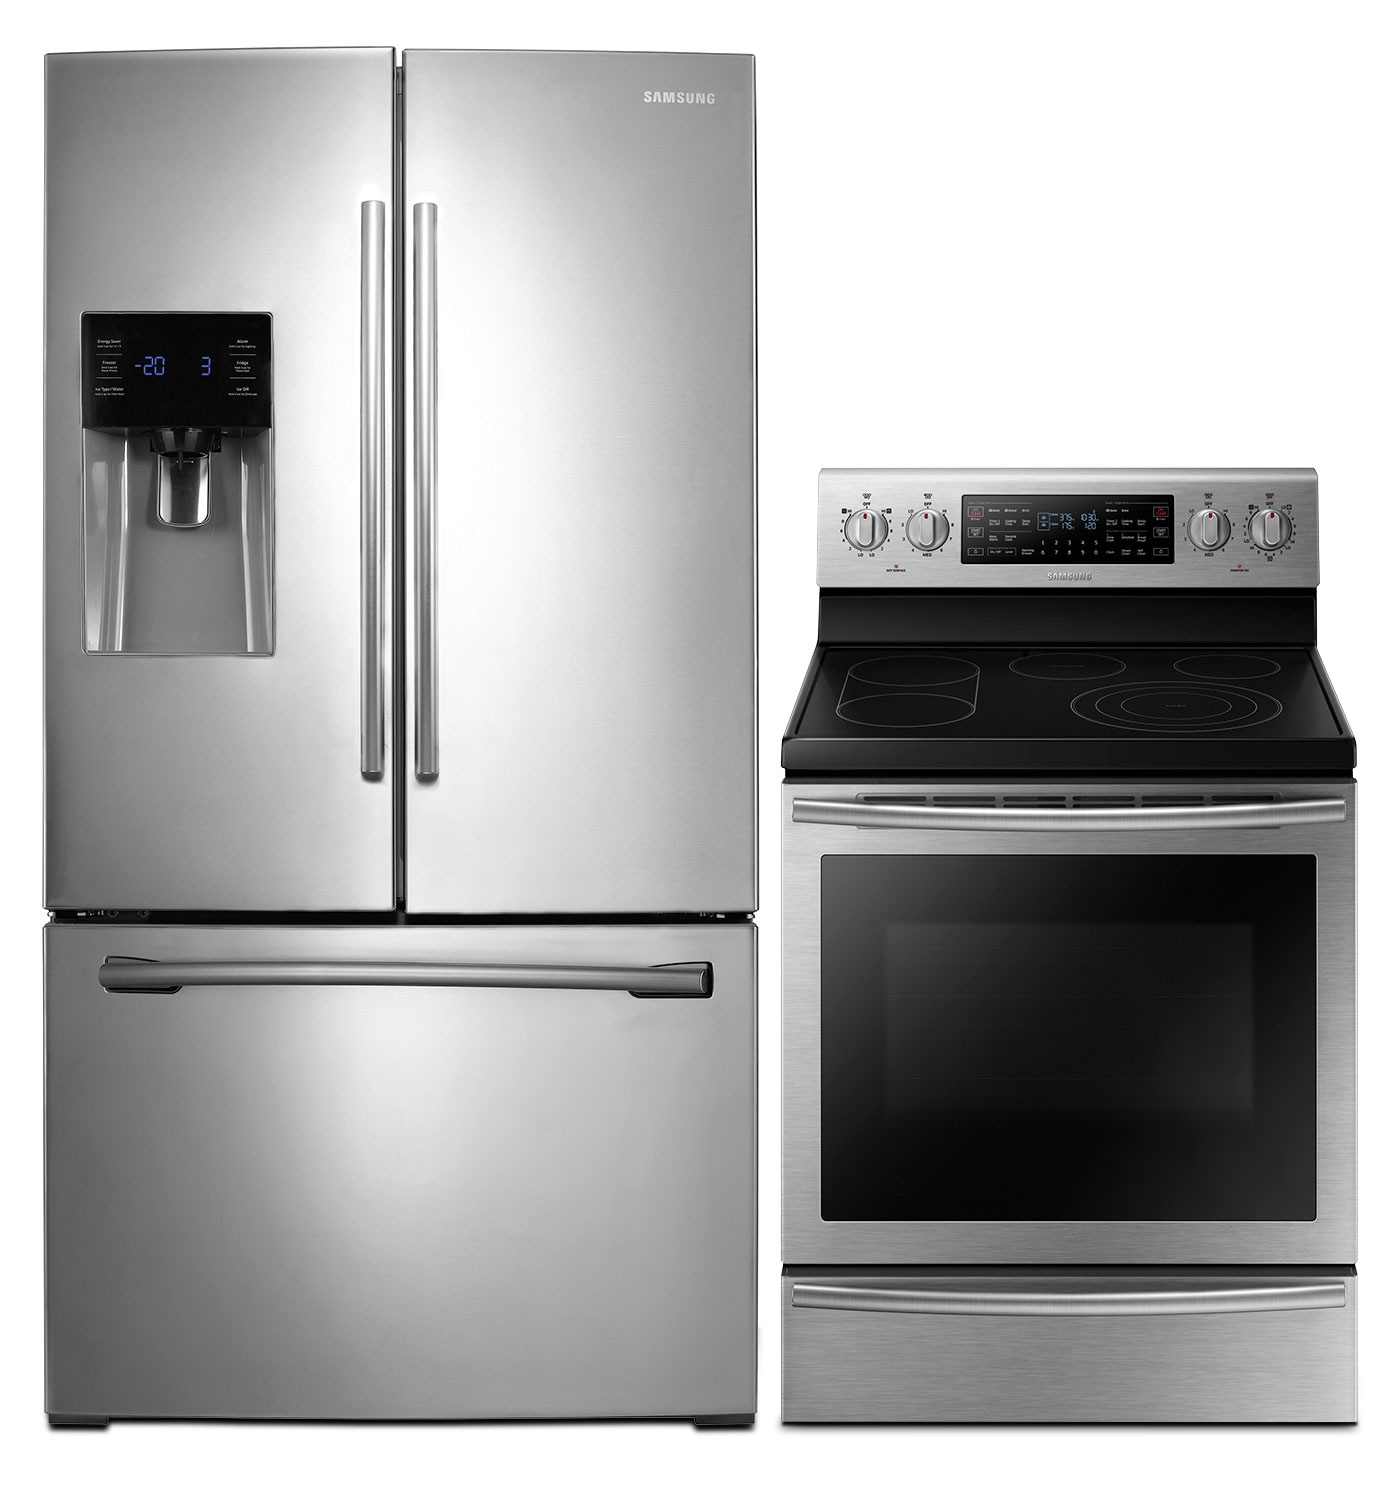 Refrigerators and Freezers - Samsung 26 Cu. Ft. French-Door Refrigerator and Flex Duo™ Electric Range - Stainless Steel